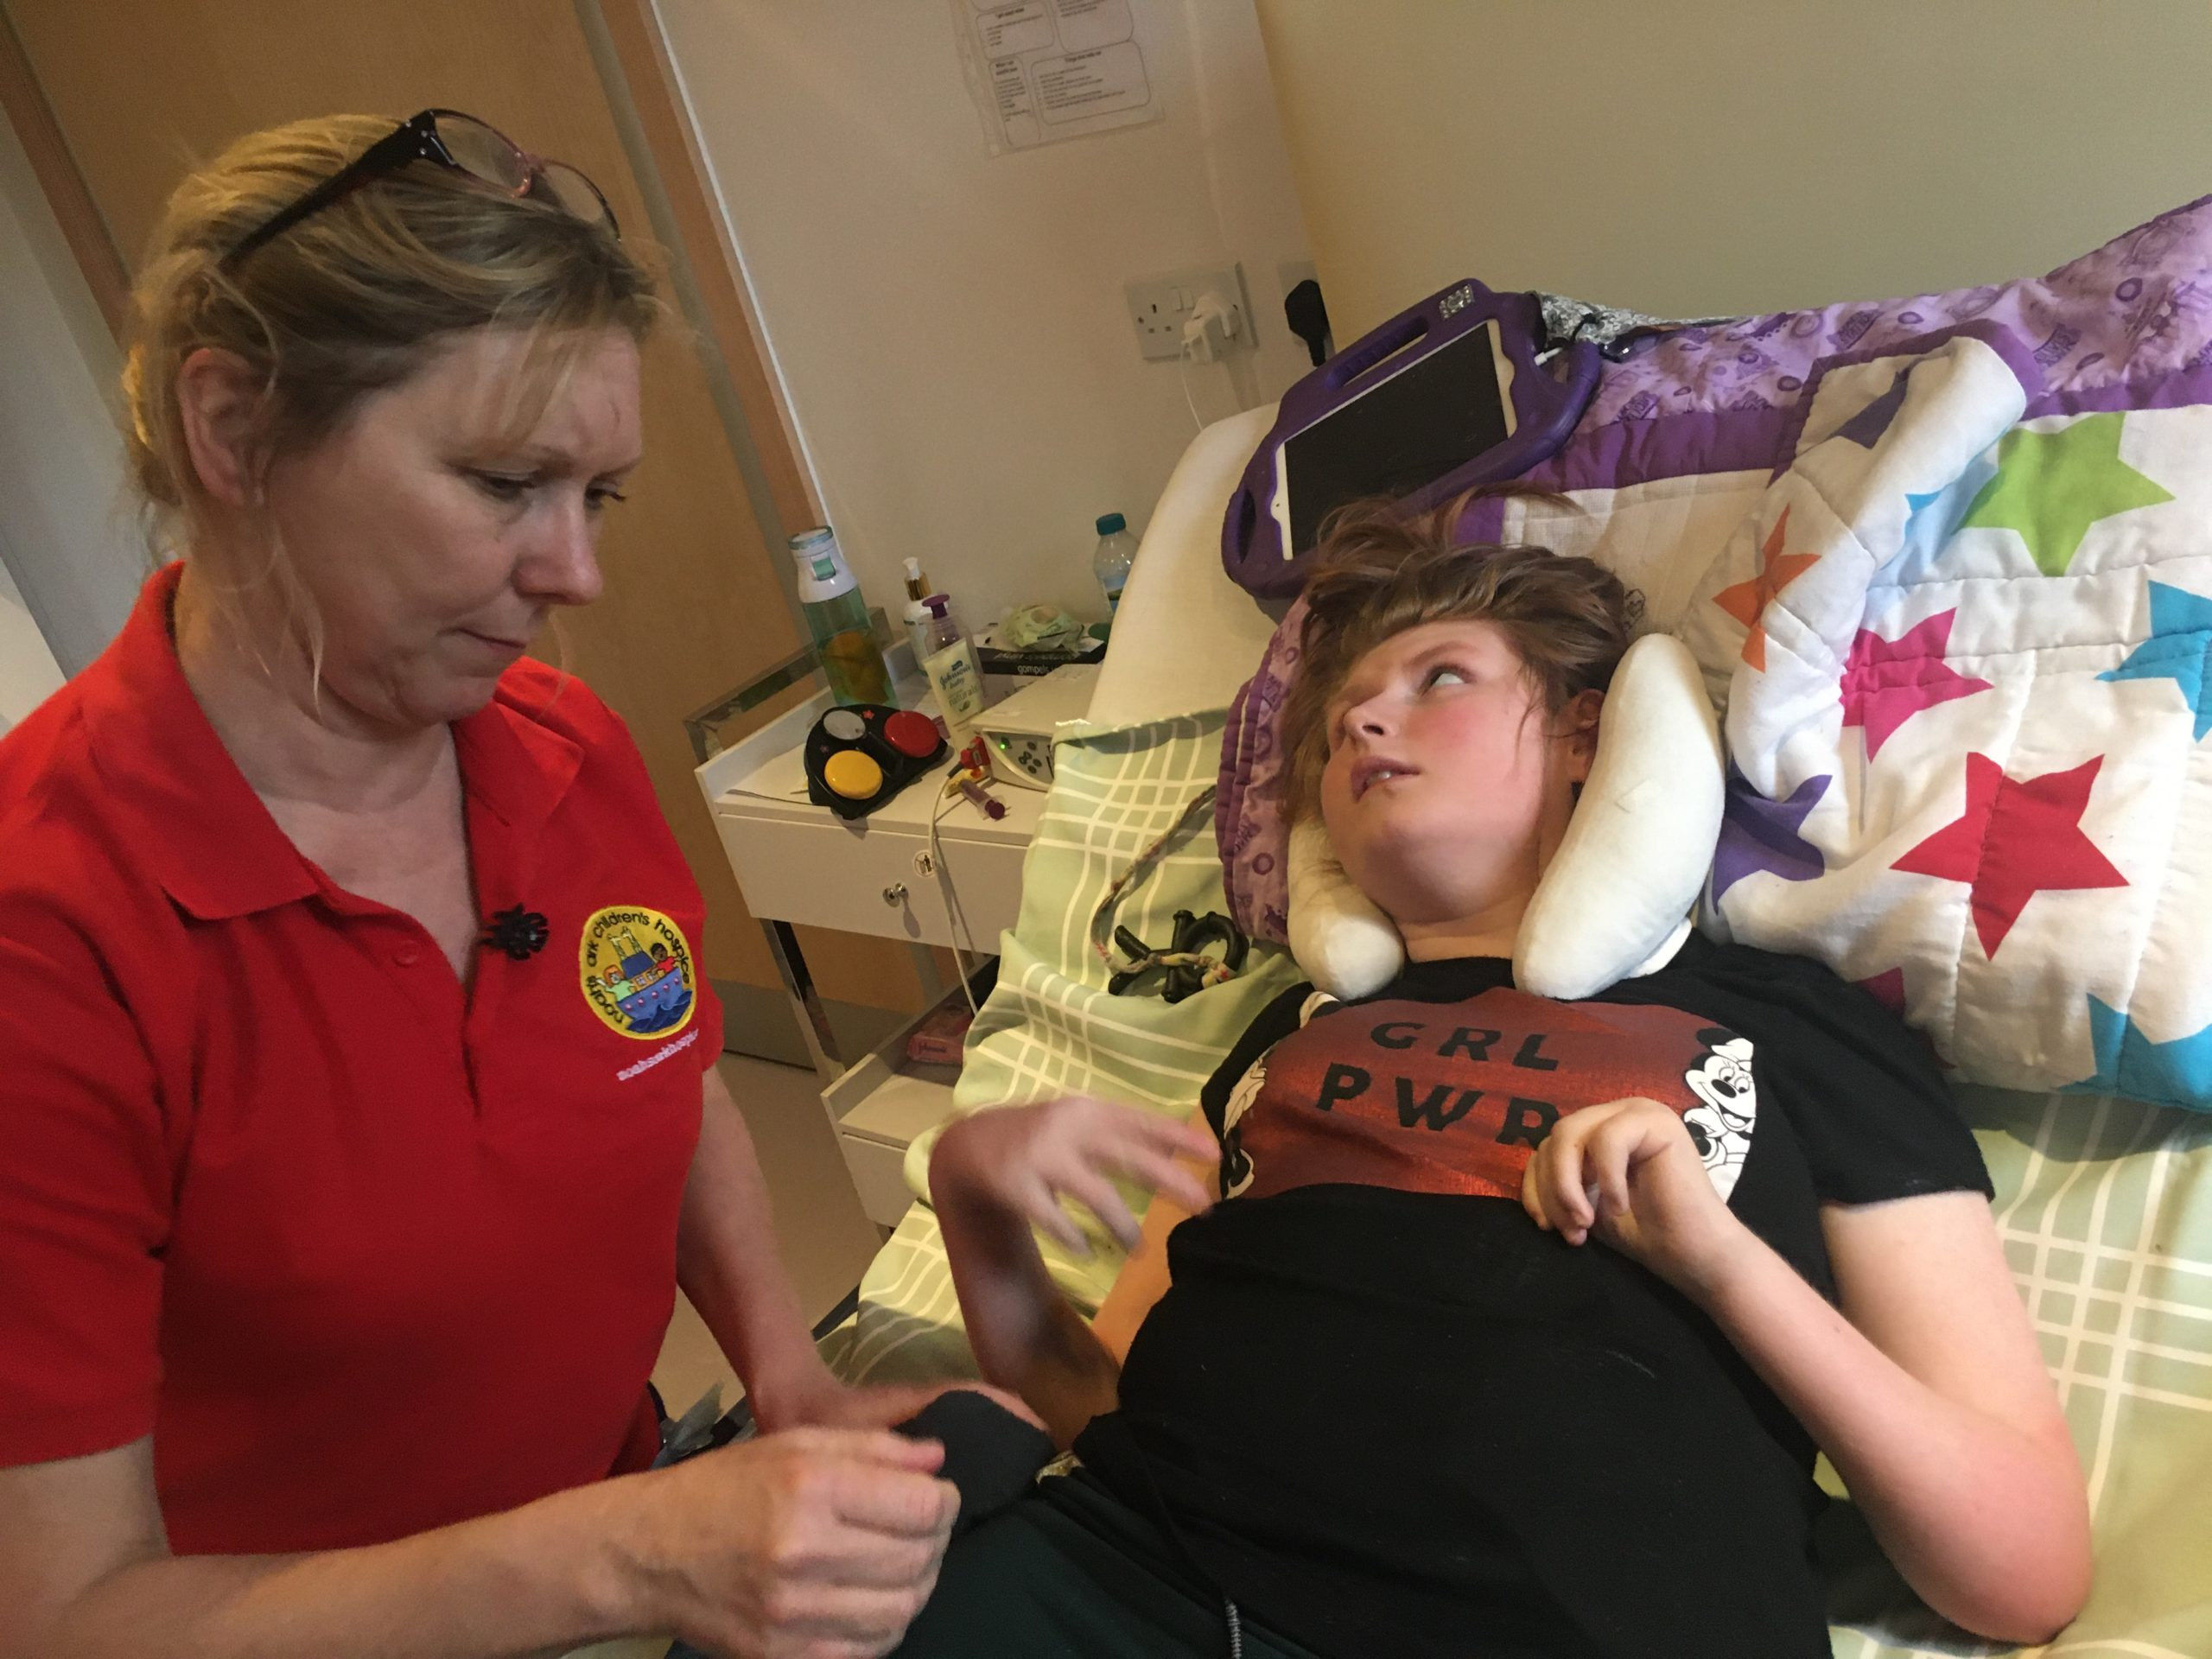 A carer with a sick child